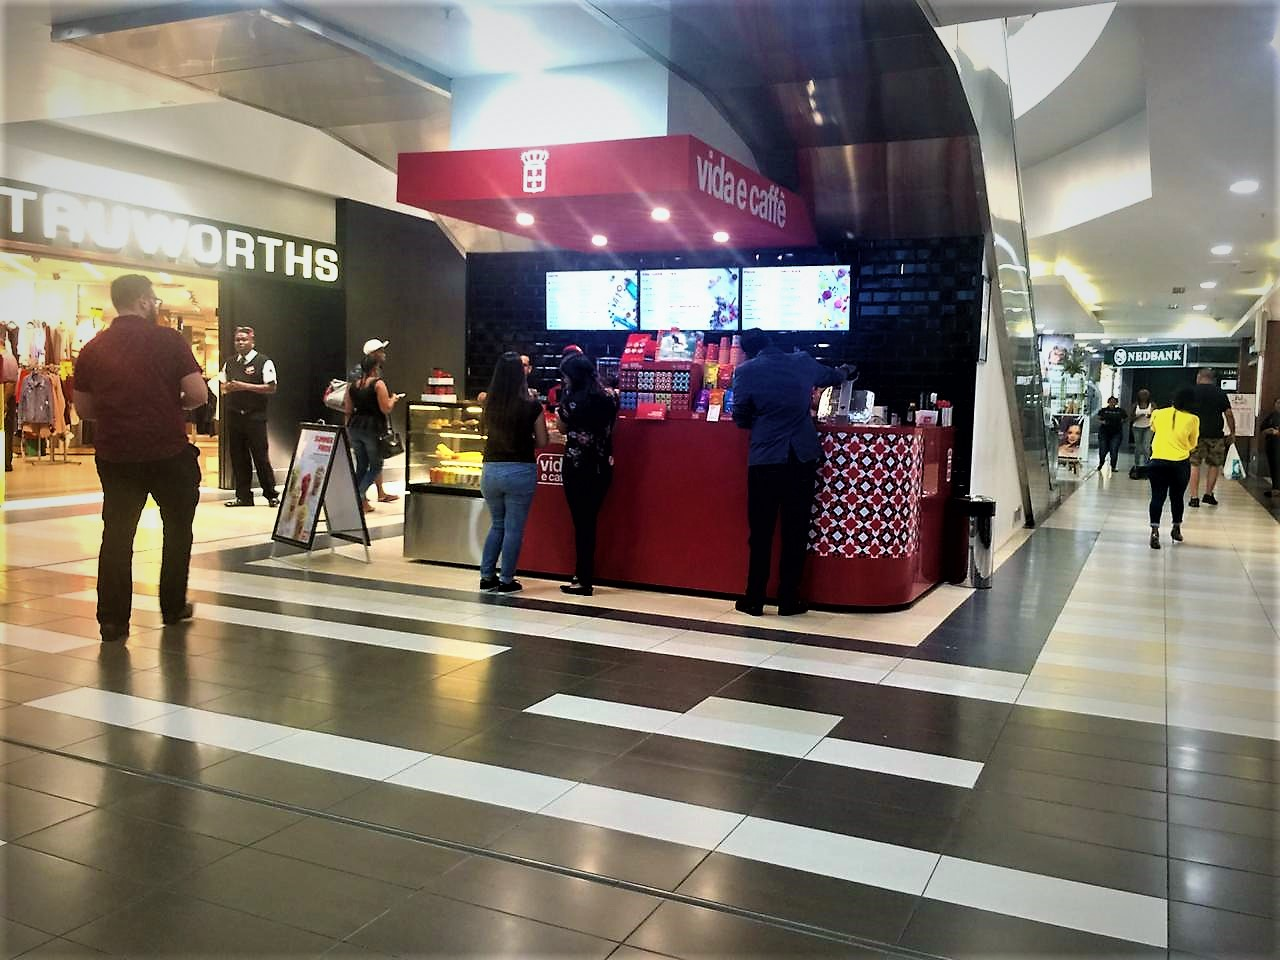 Mall Ads sets up kiosk for vida e caffè